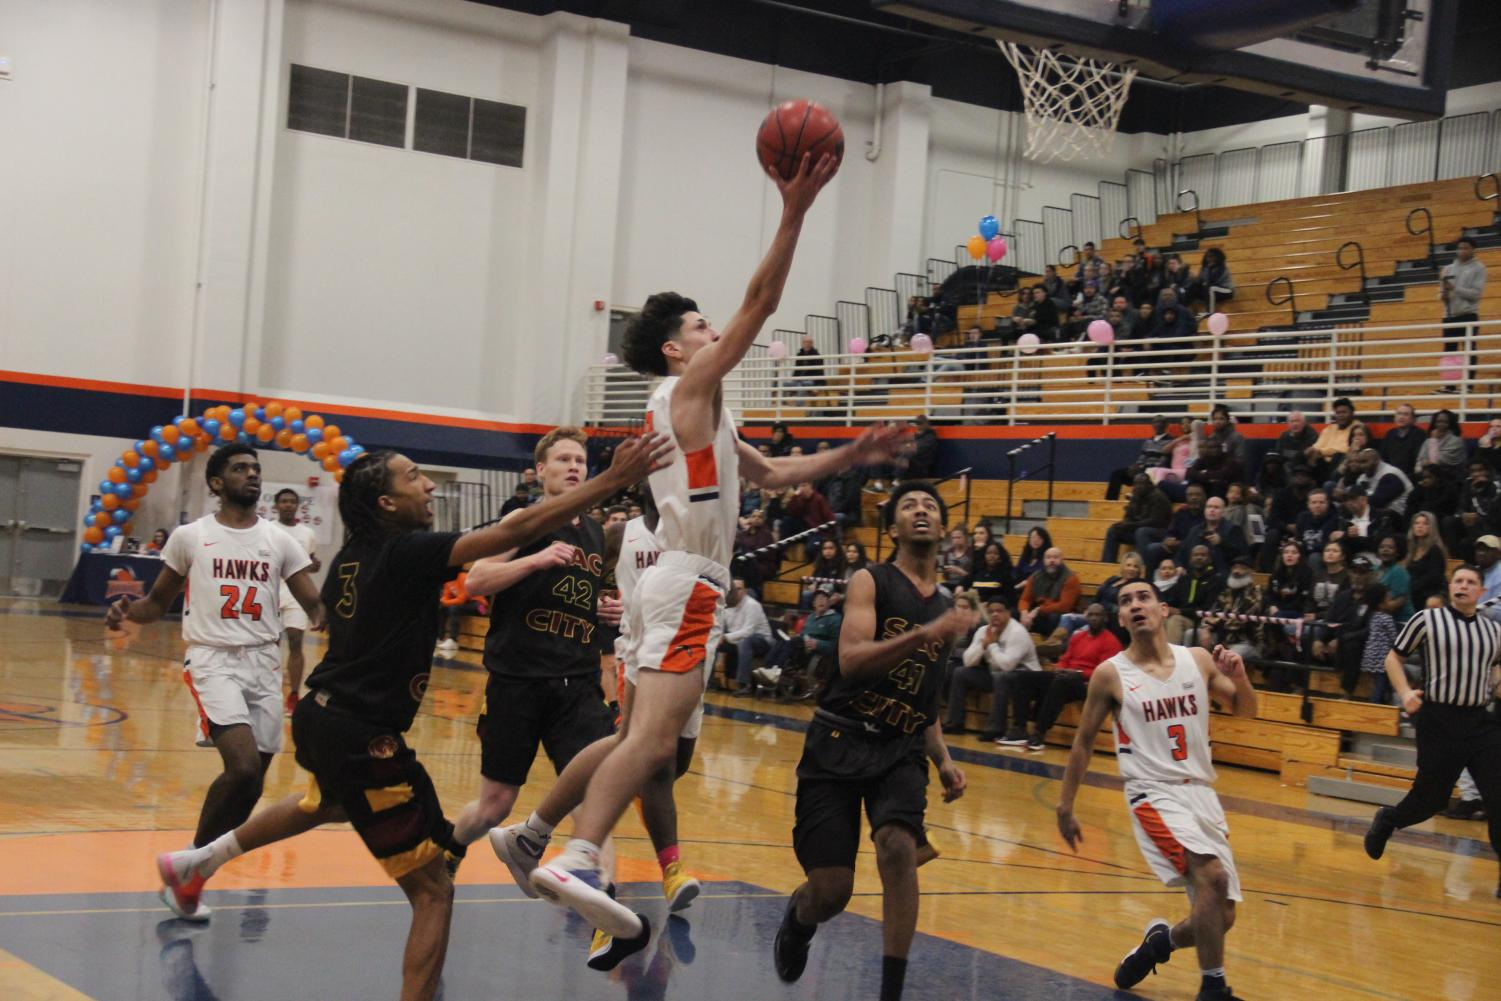 The Hawks played against the Sacramento City College Panthers on Tuesday.